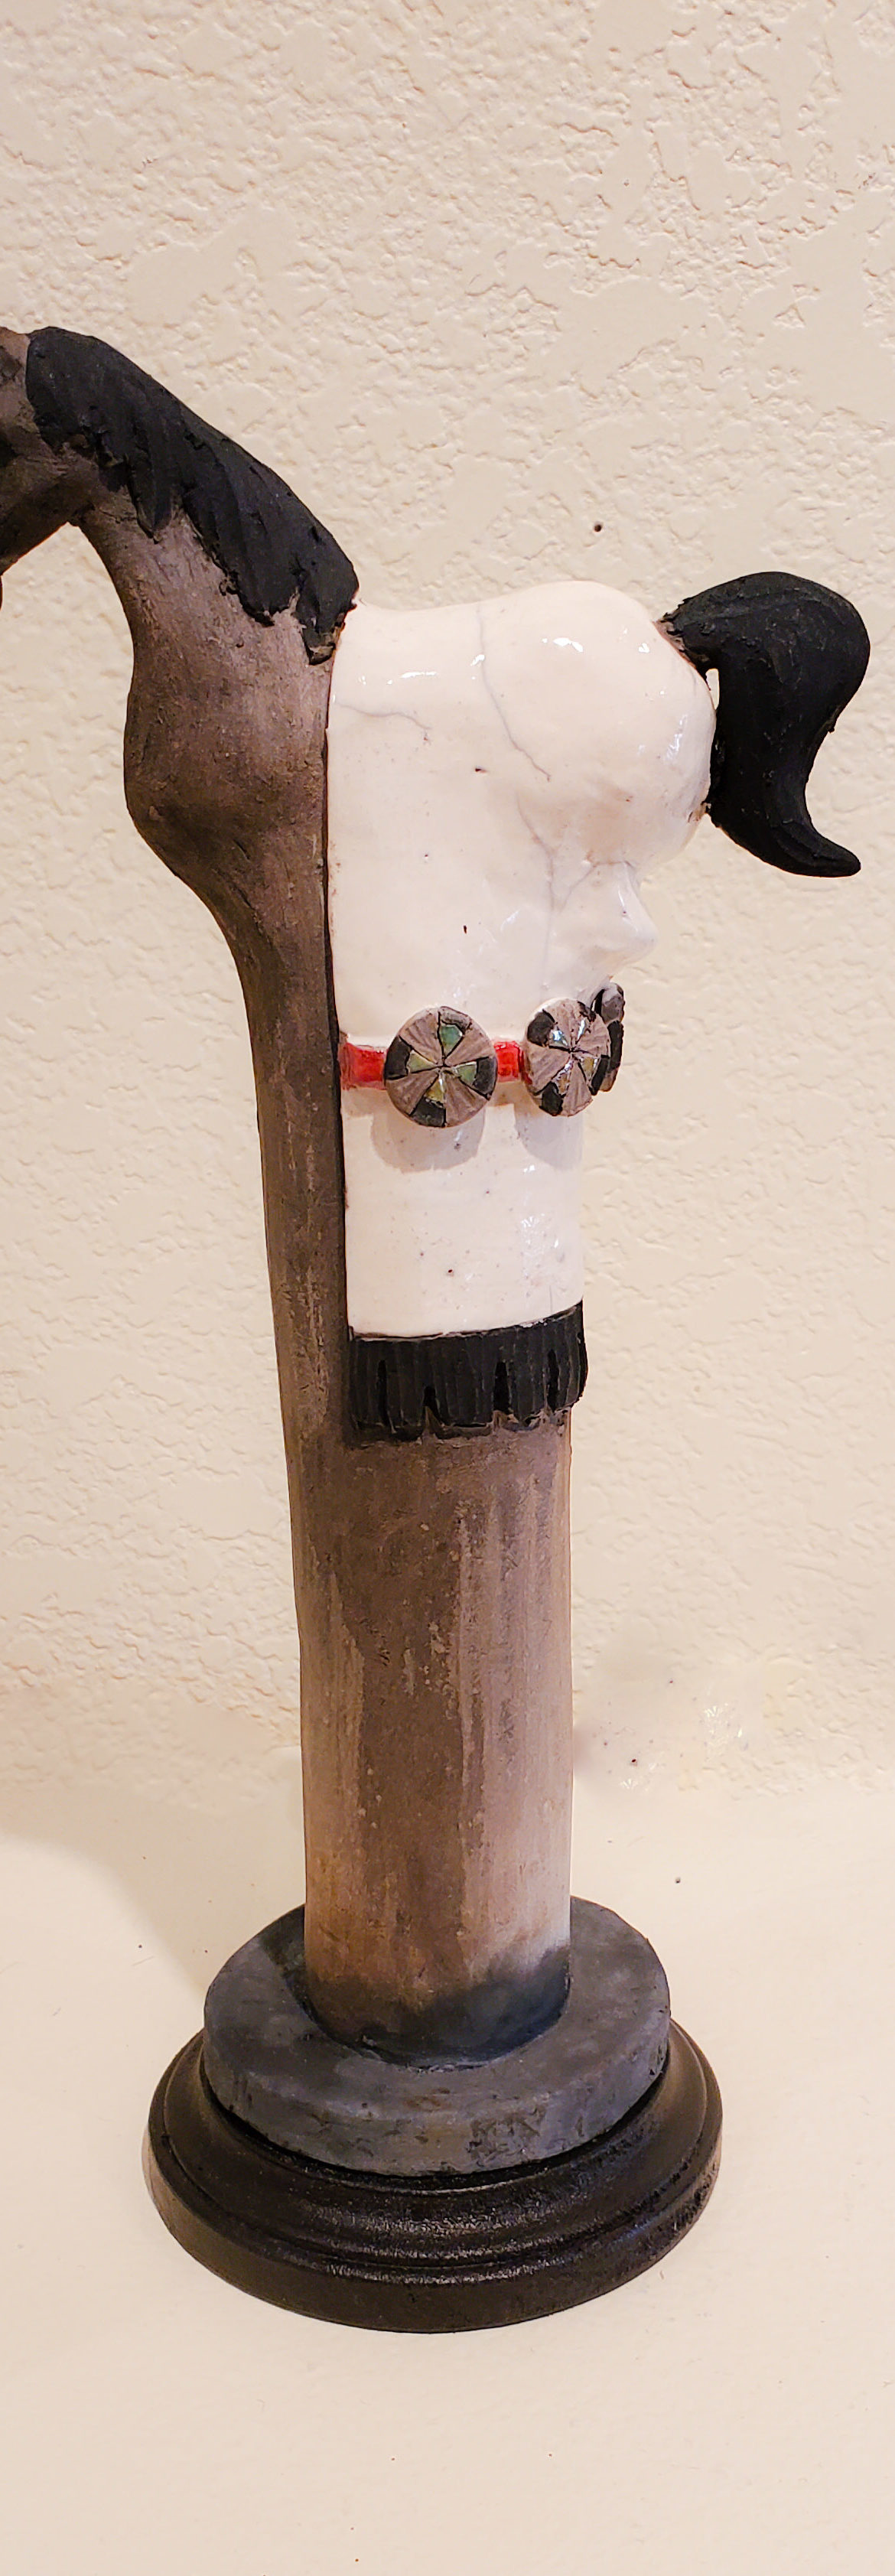 Painted Pony #13, John Booth, Ceramic Sculpture, Rogoway Gallery